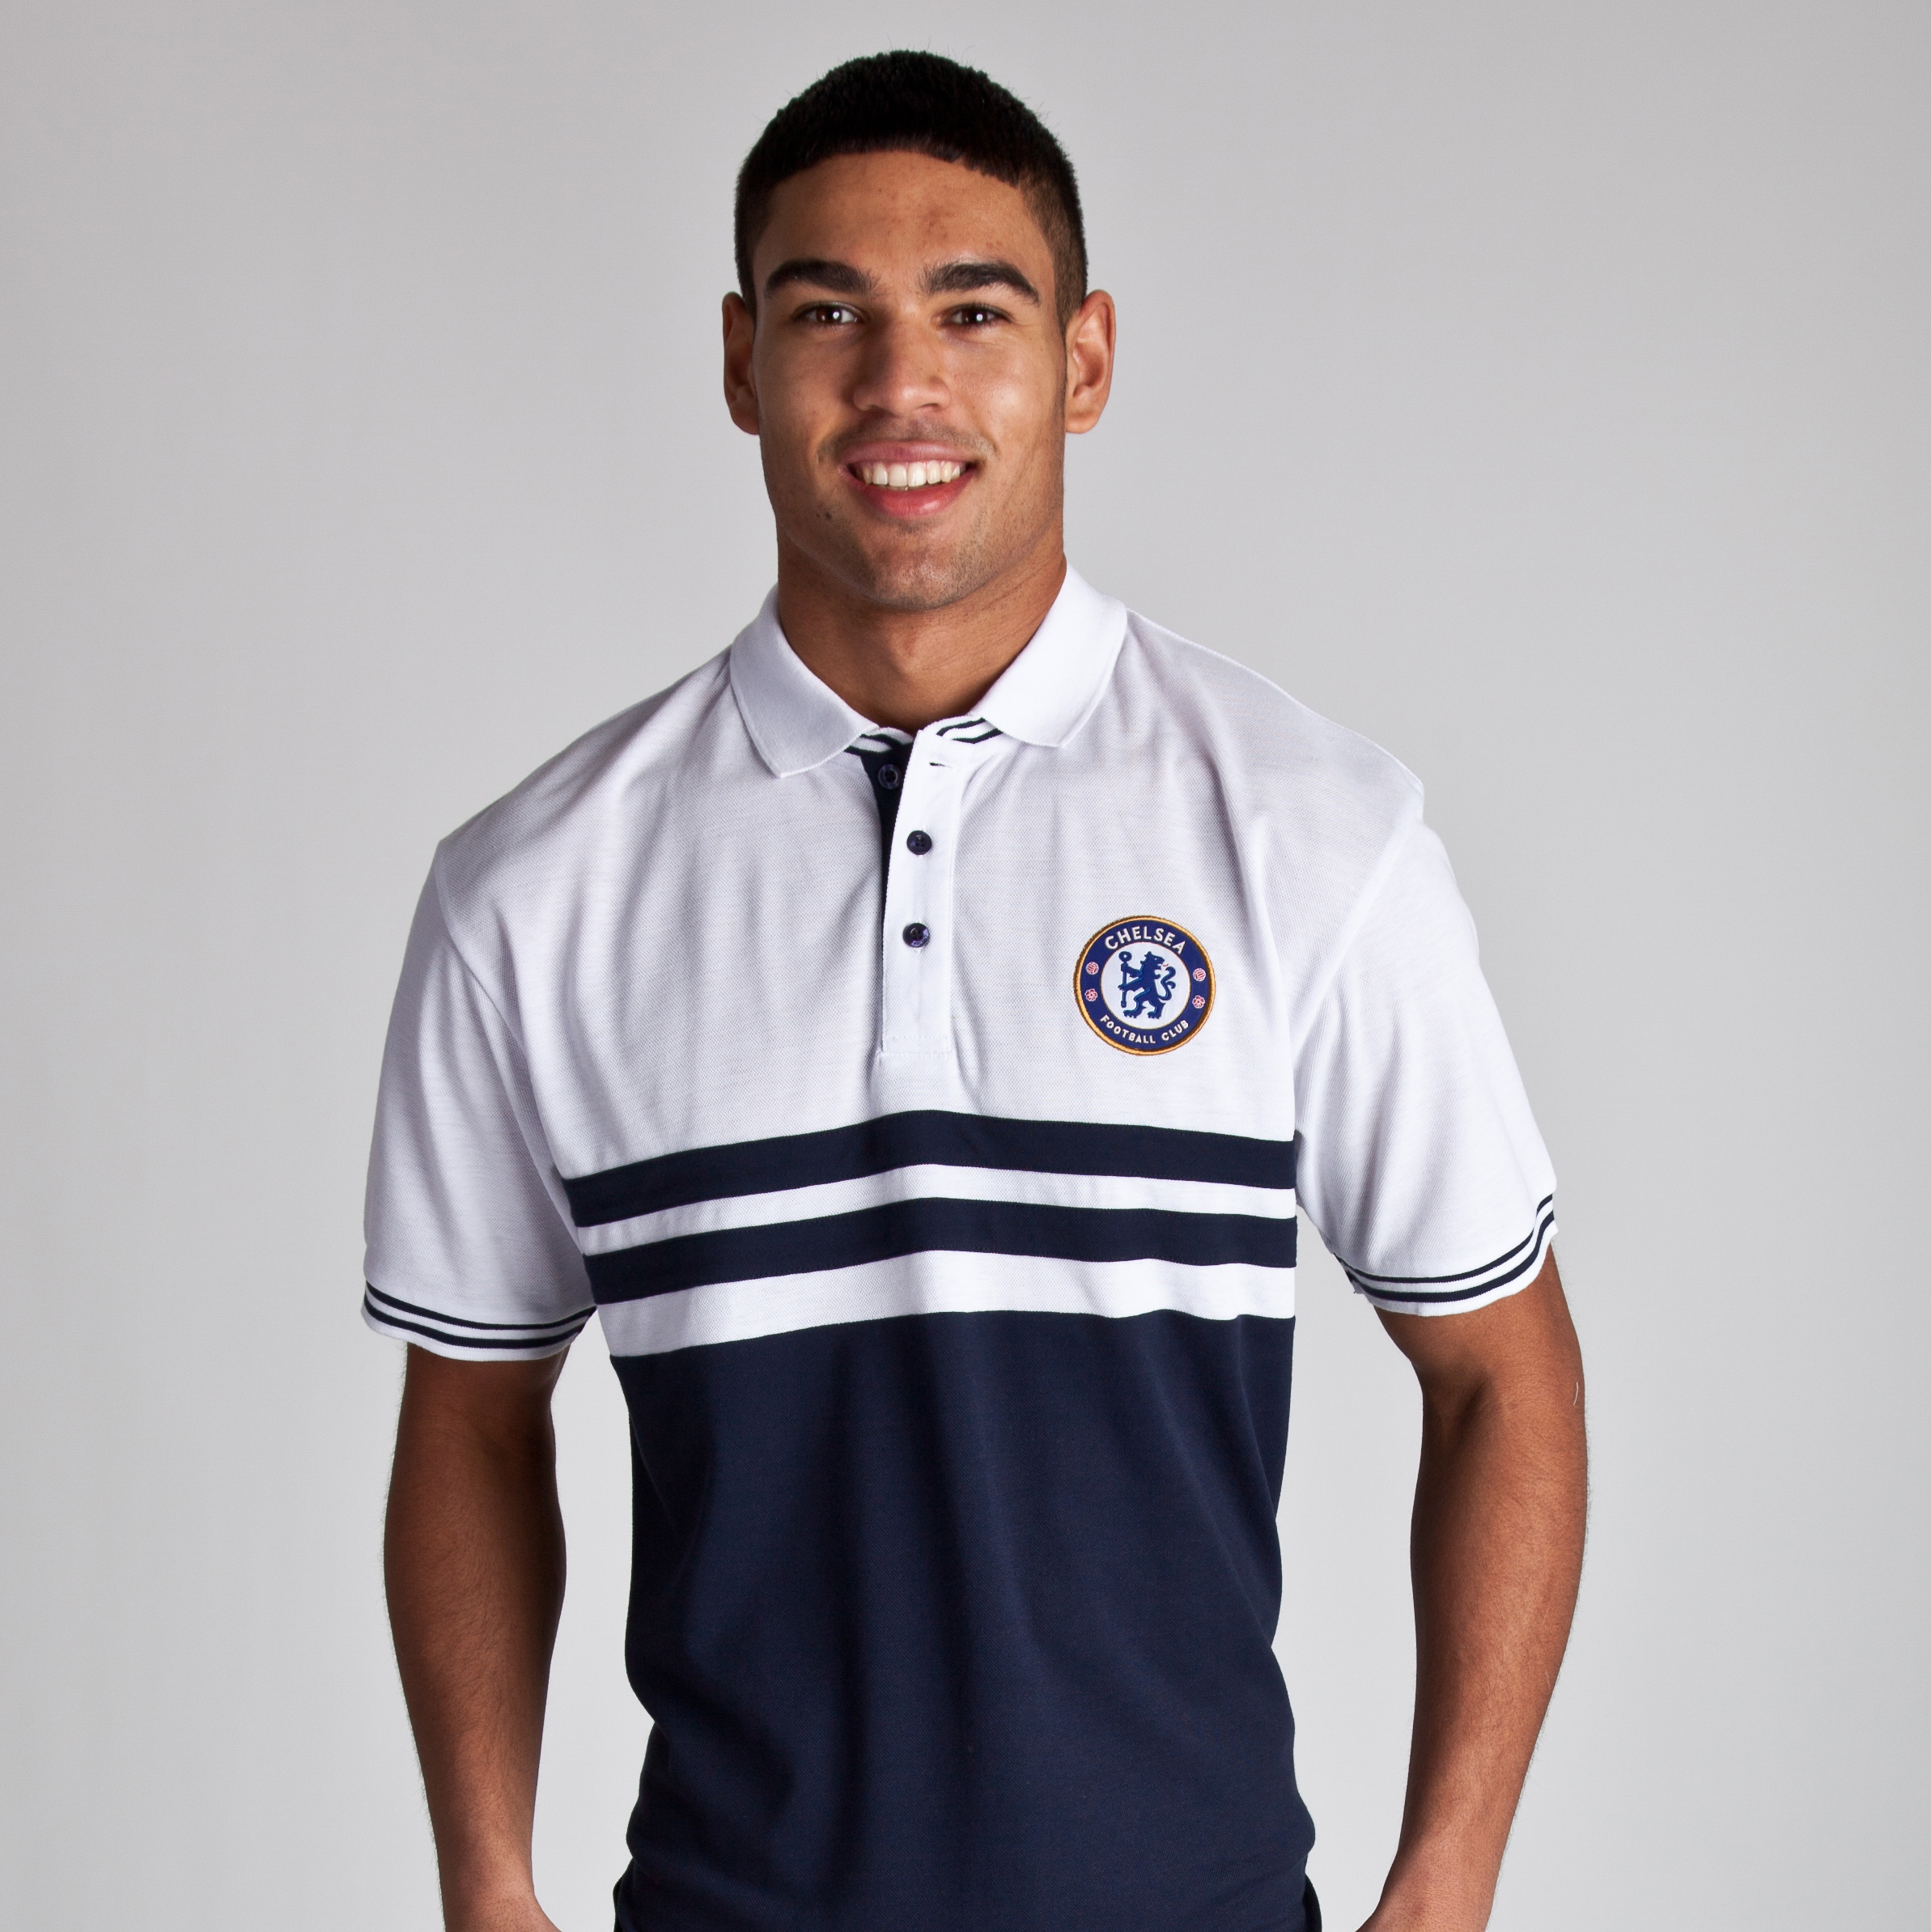 Chelsea Core Paneled Polo - Navy/White